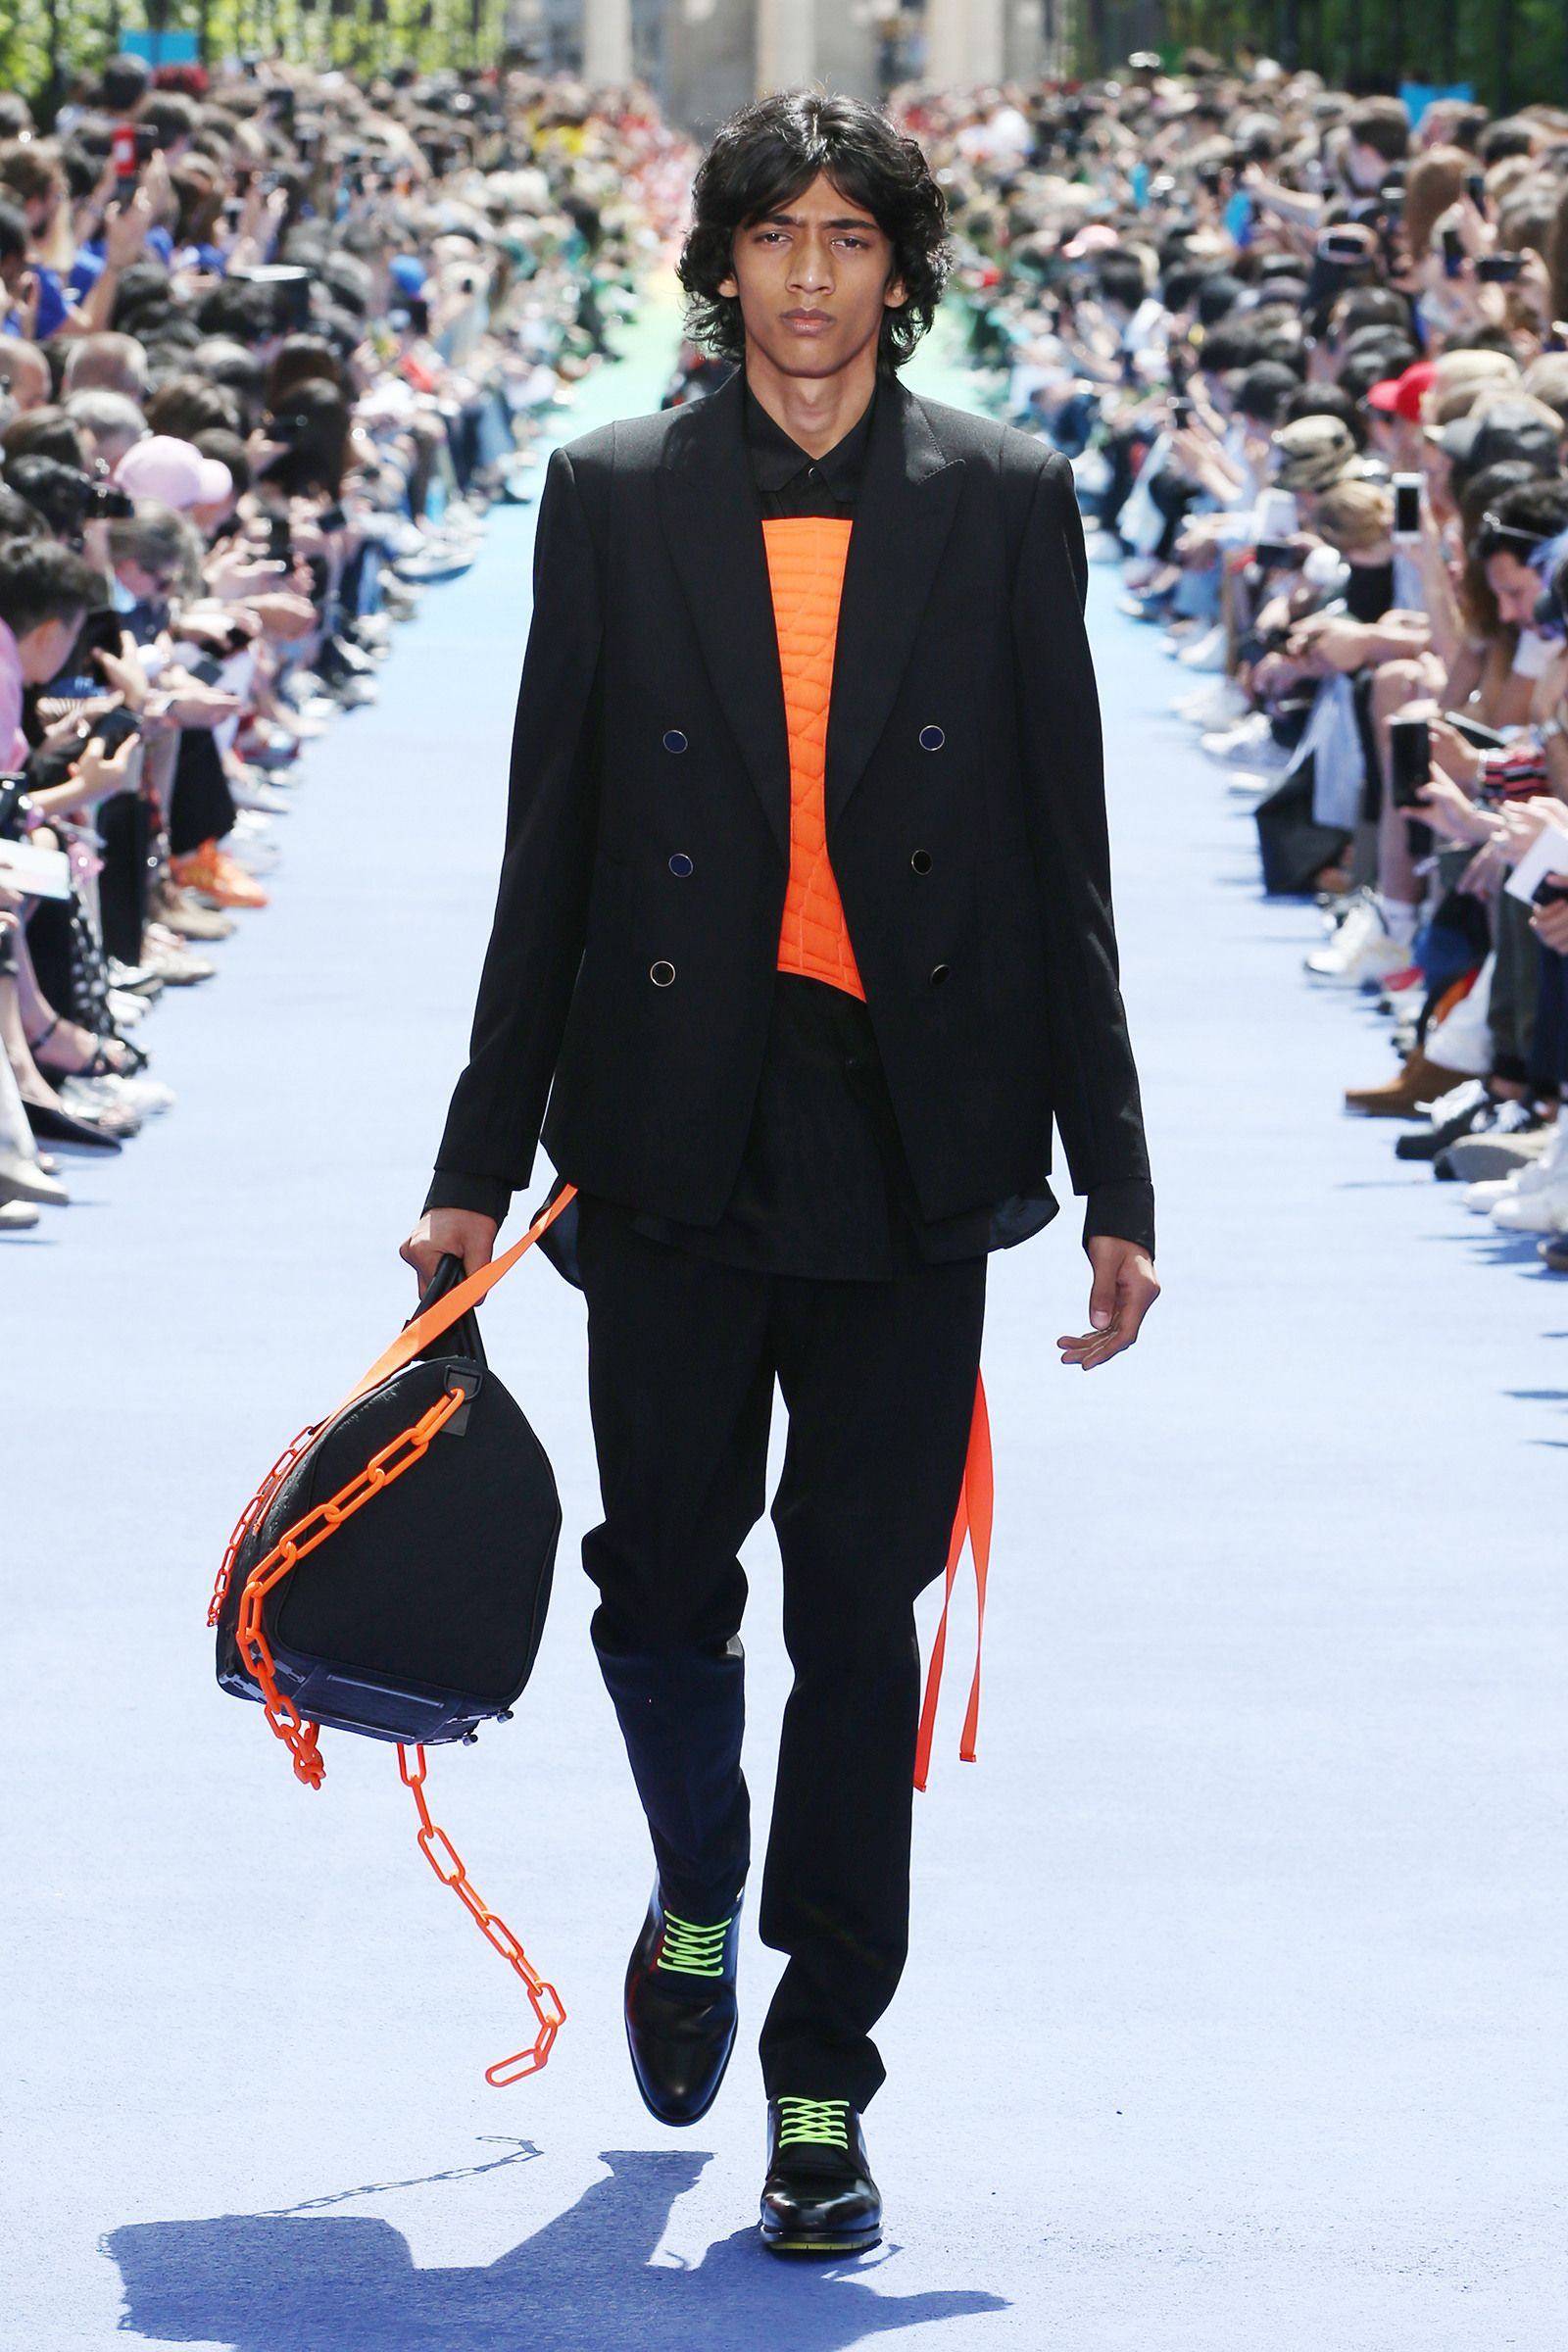 064aa8727883 A look from the Louis Vuitton Men s Spring-Summer 2019 Collection ...